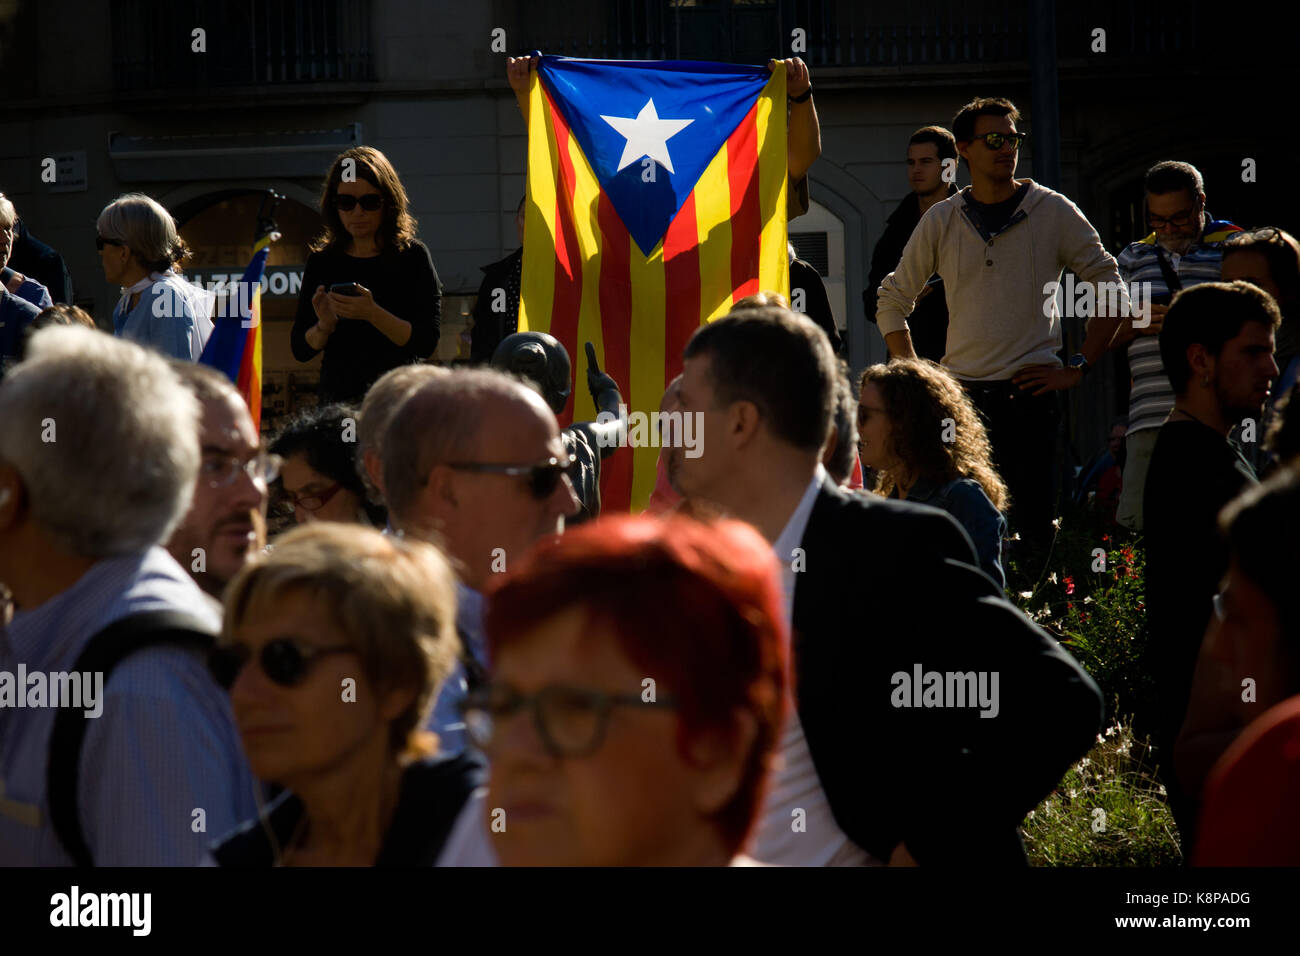 Barcelona, Spain. 20th Sep, 2017. Pro-independence supporters among a estelada flag (sign of Catalonia independence) Stock Photo